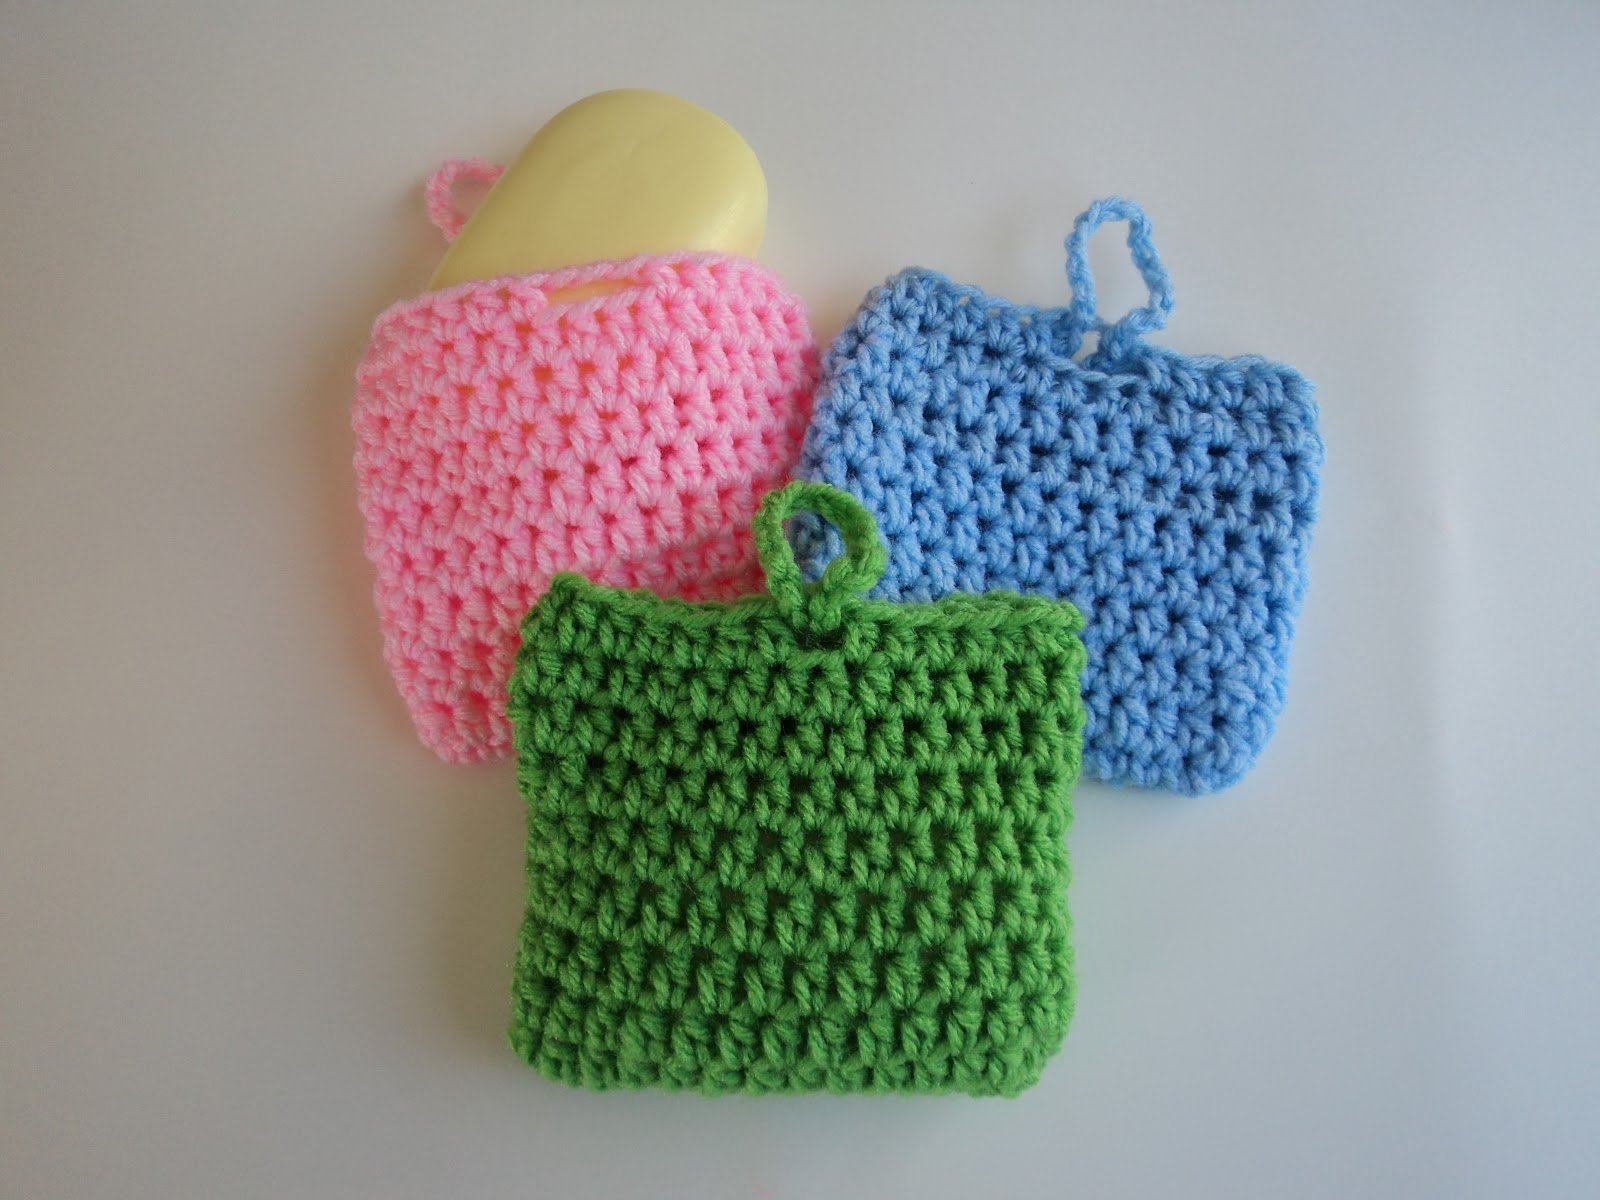 Crochet Patterns Cute : This little scrubber can also double as a soap saver and you can make ...